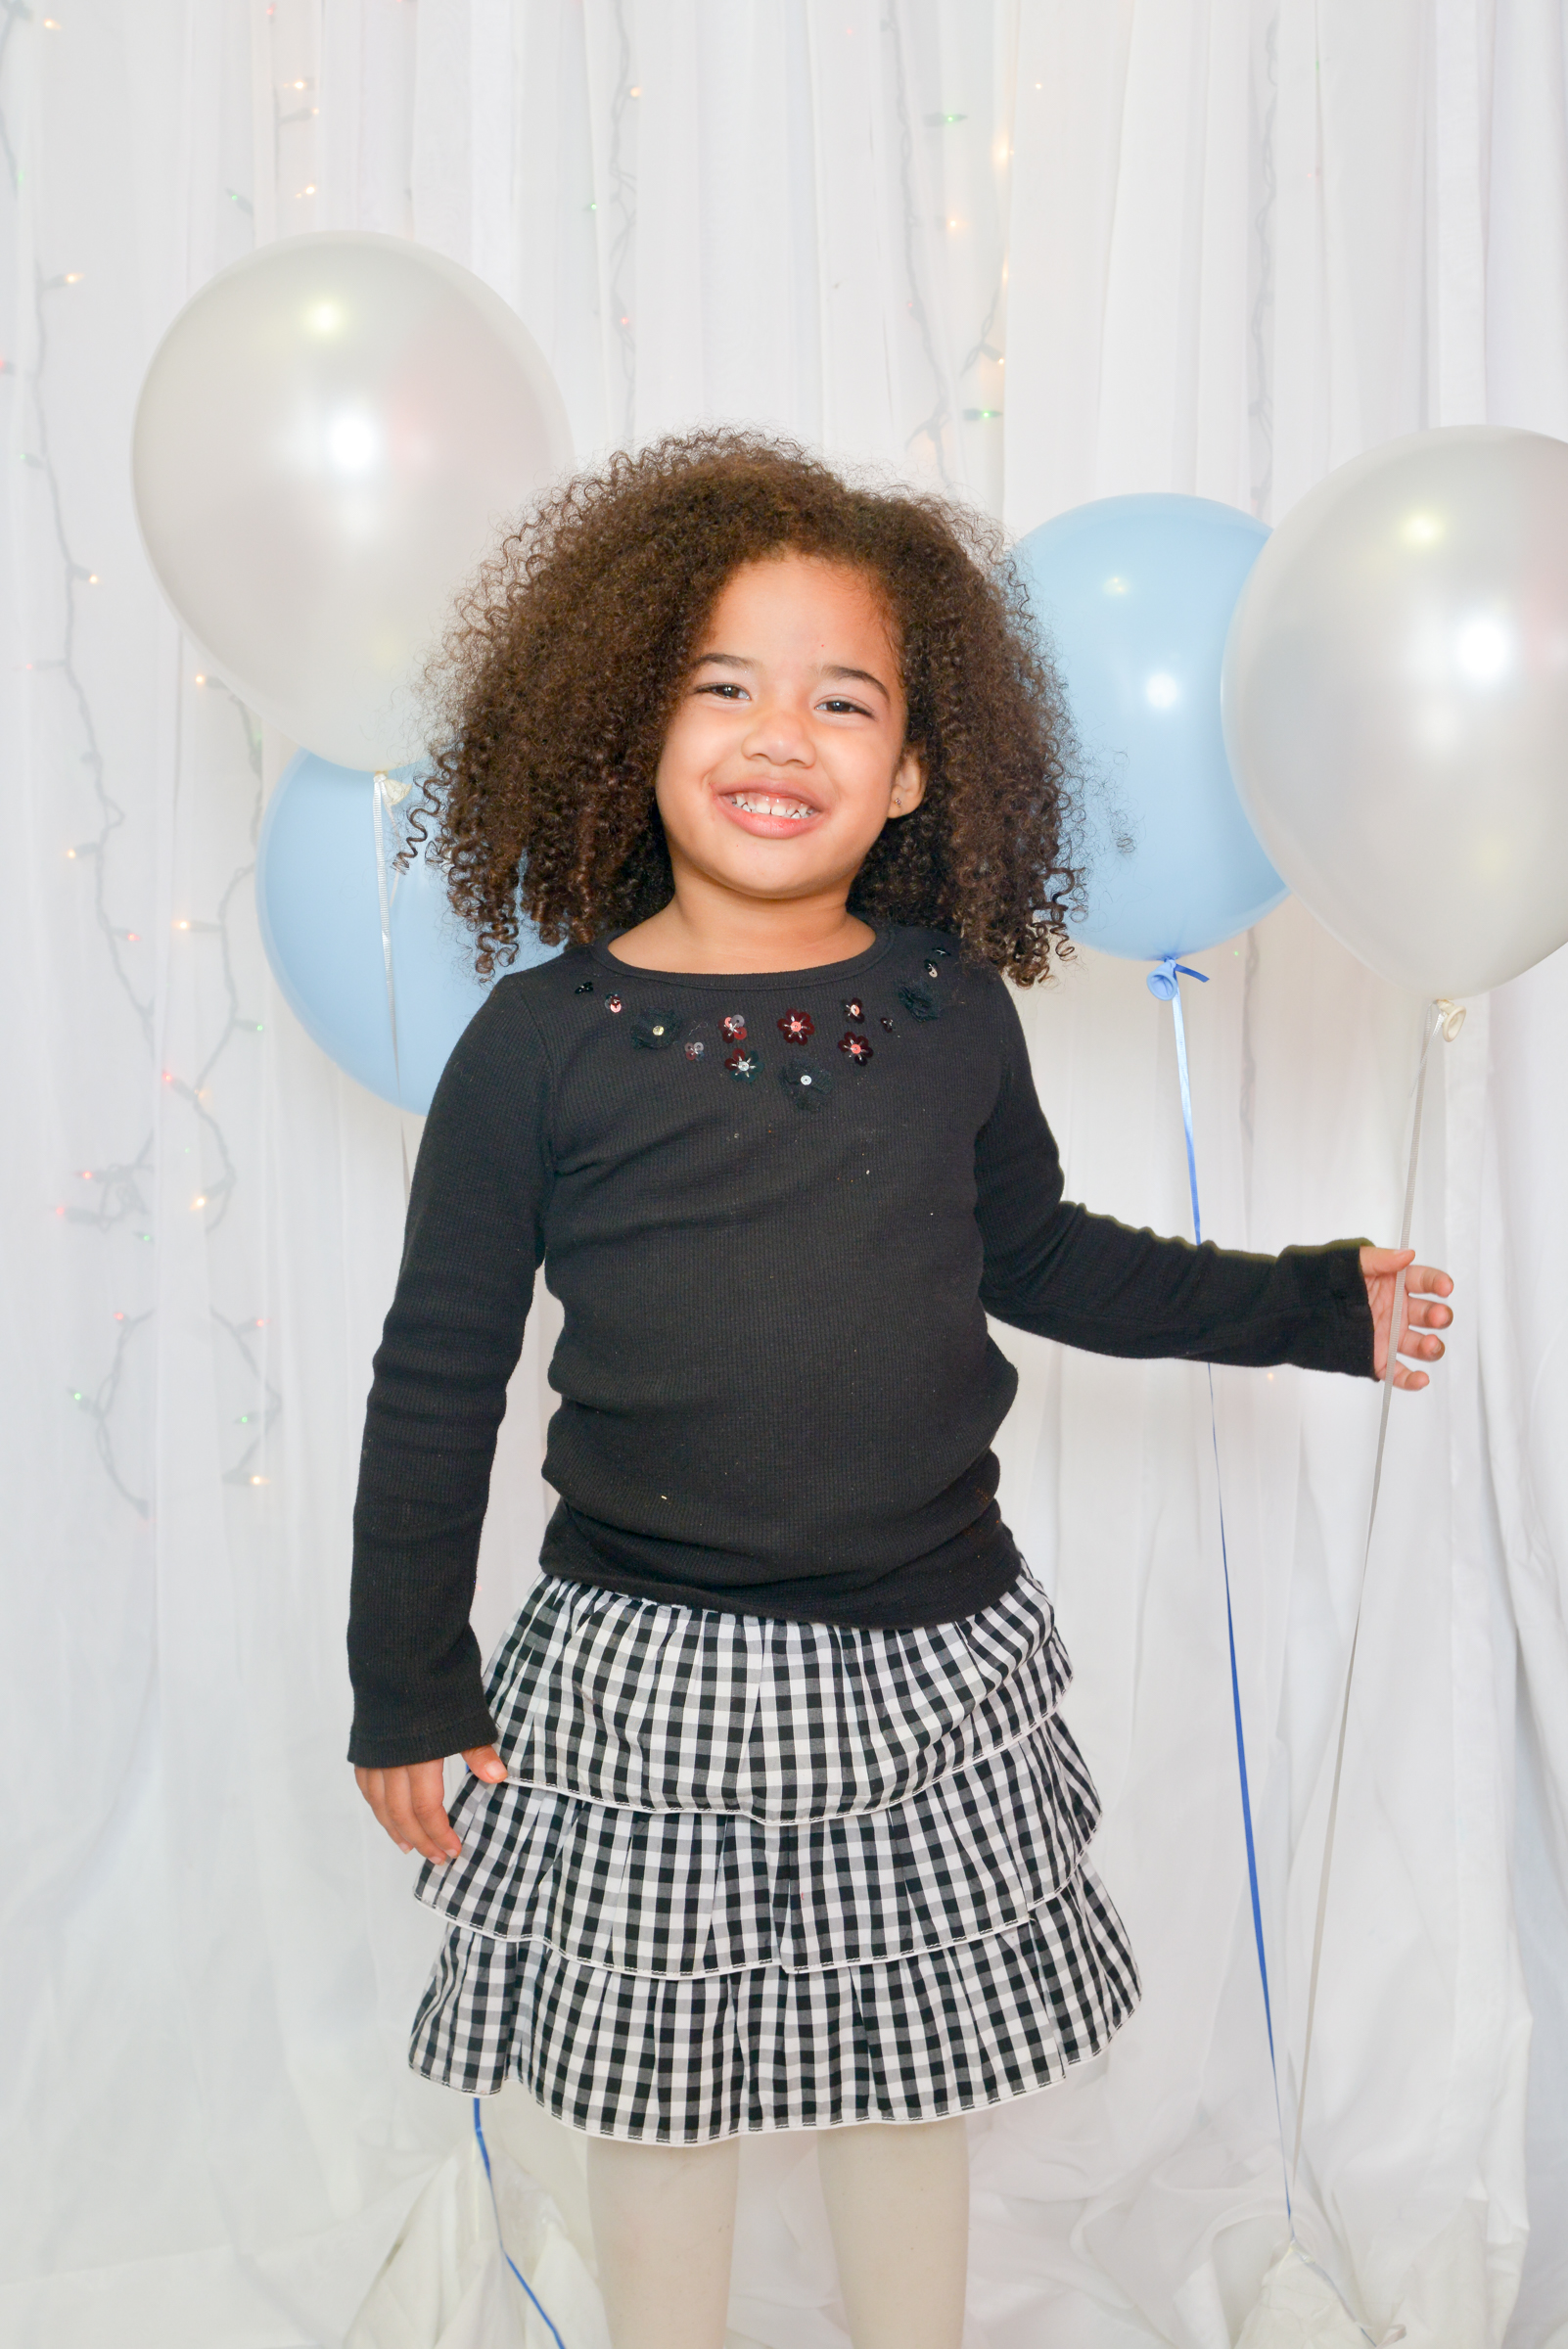 Winter Dance Photos 2016 - Click here for dance photos and enter code:9409